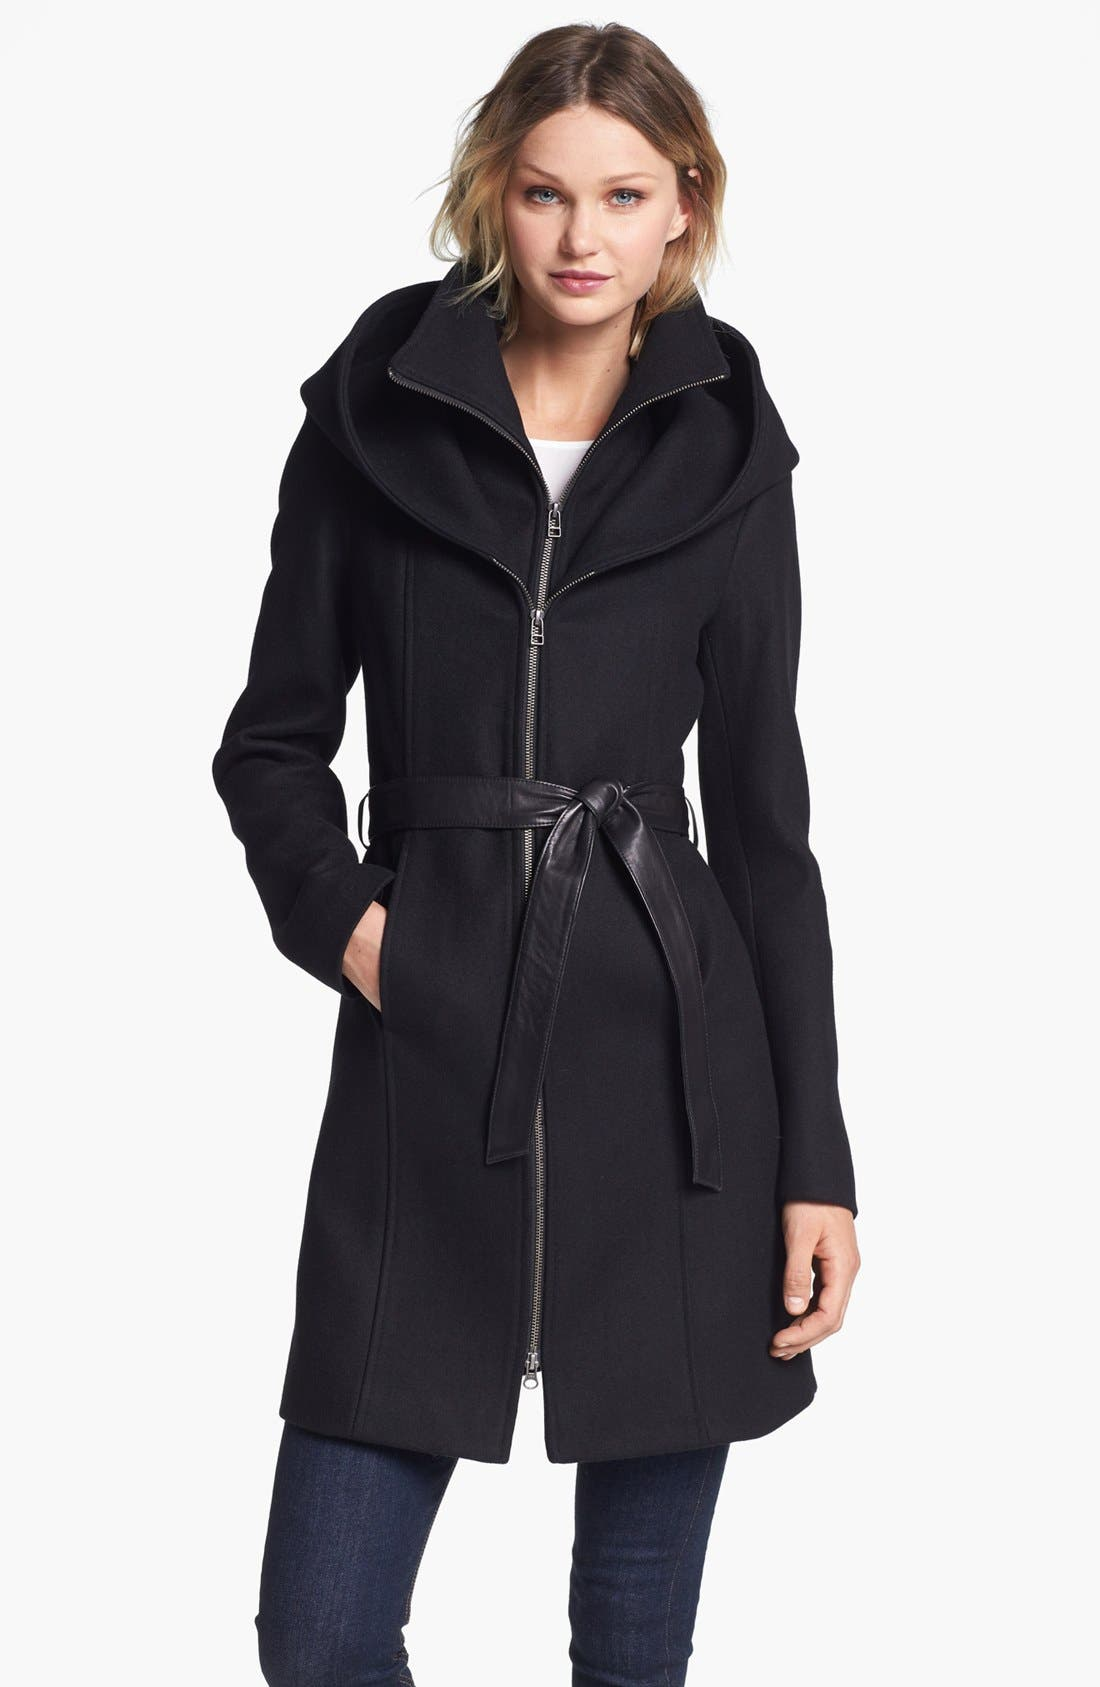 Main Image - Soia & Kyo Hooded Wool Blend Coat with Leather Belt